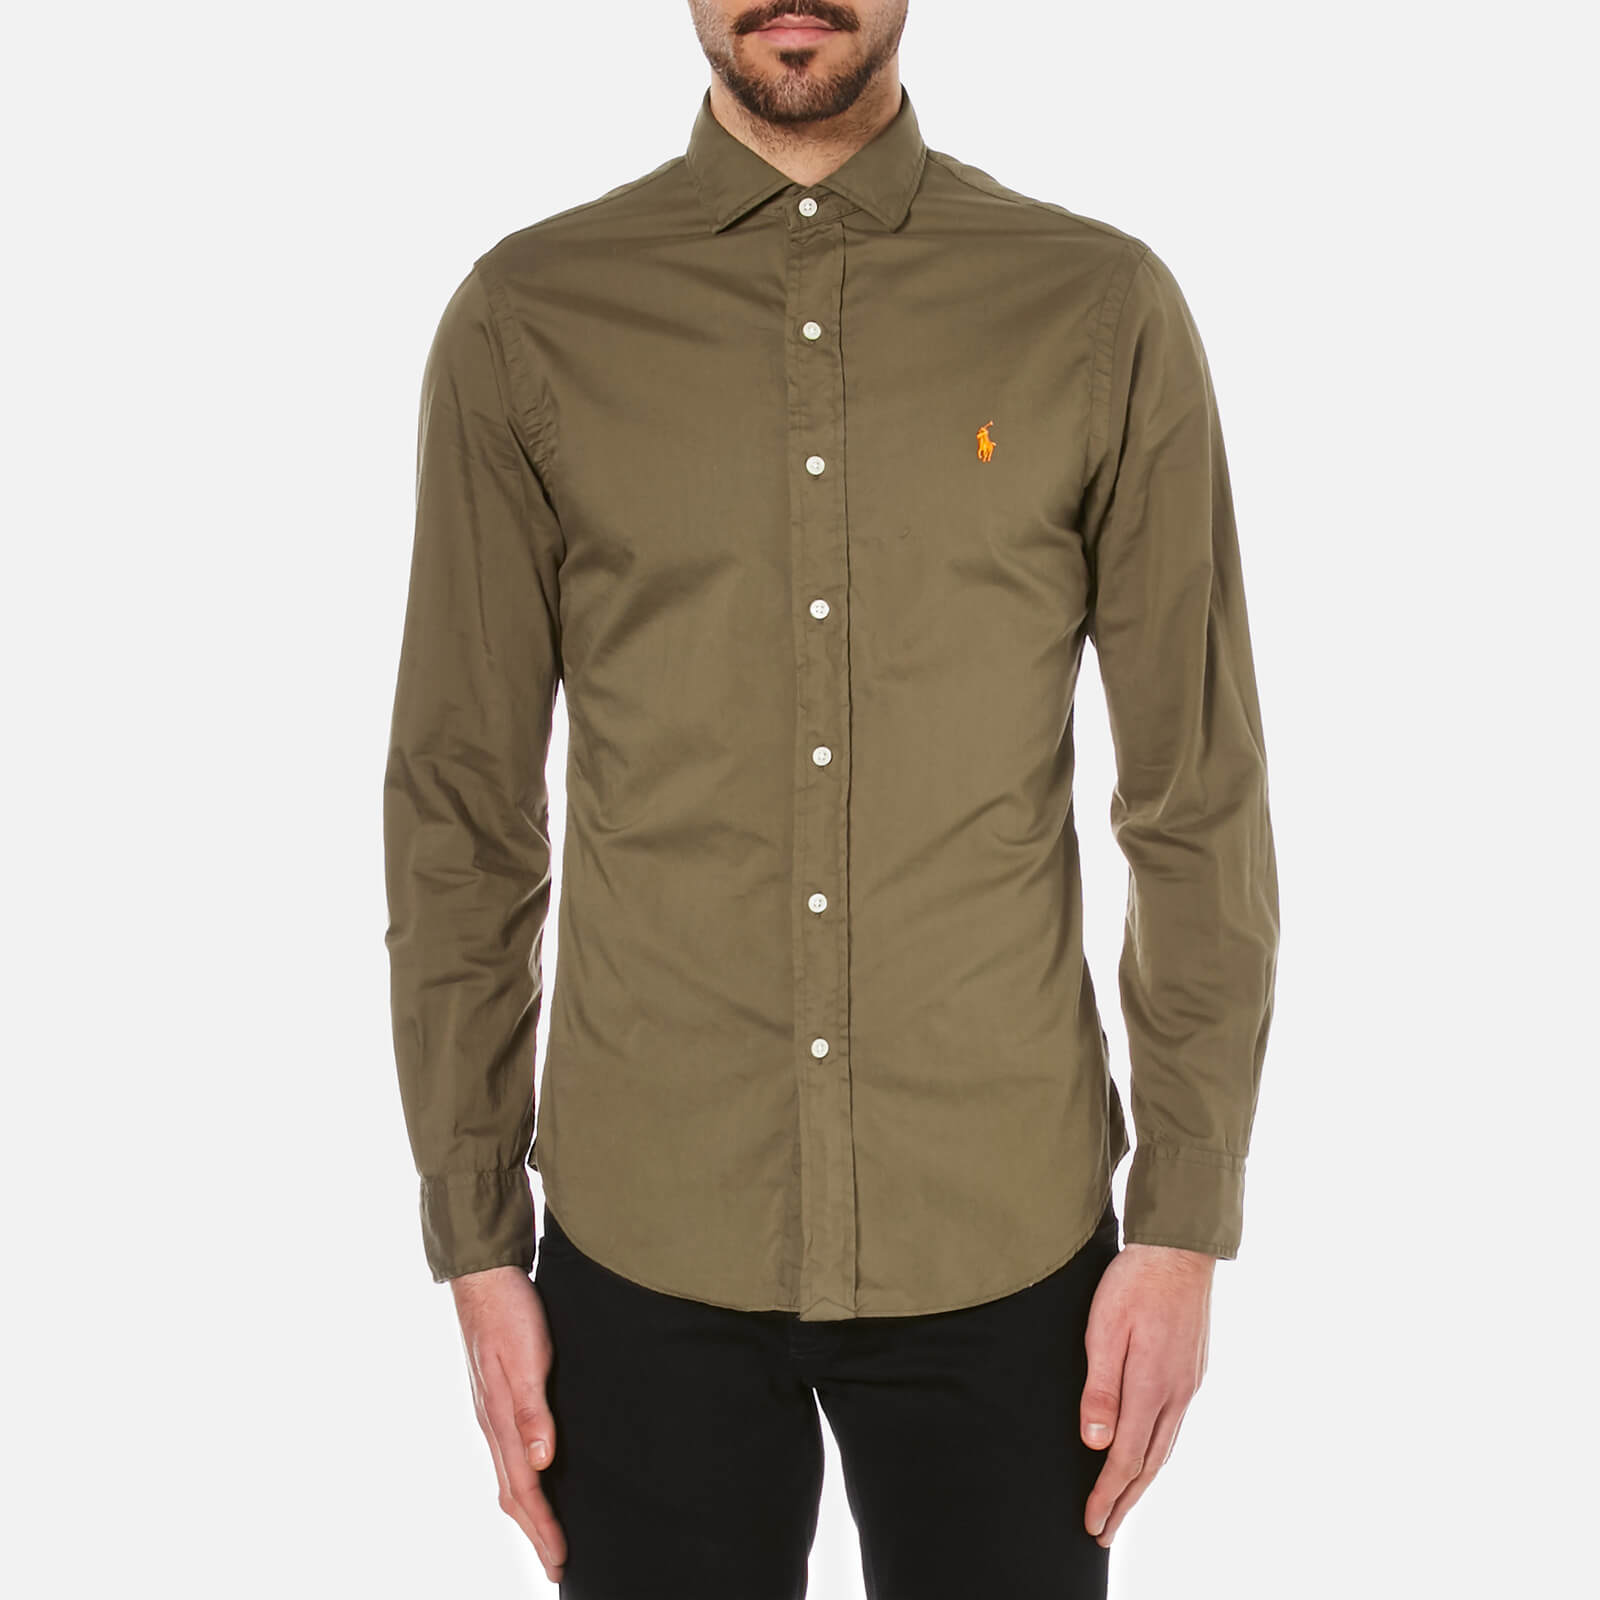 69127f07a744 Polo Ralph Lauren Men s Long Sleeve Slim Shirt - Olive - Free UK Delivery  over £50